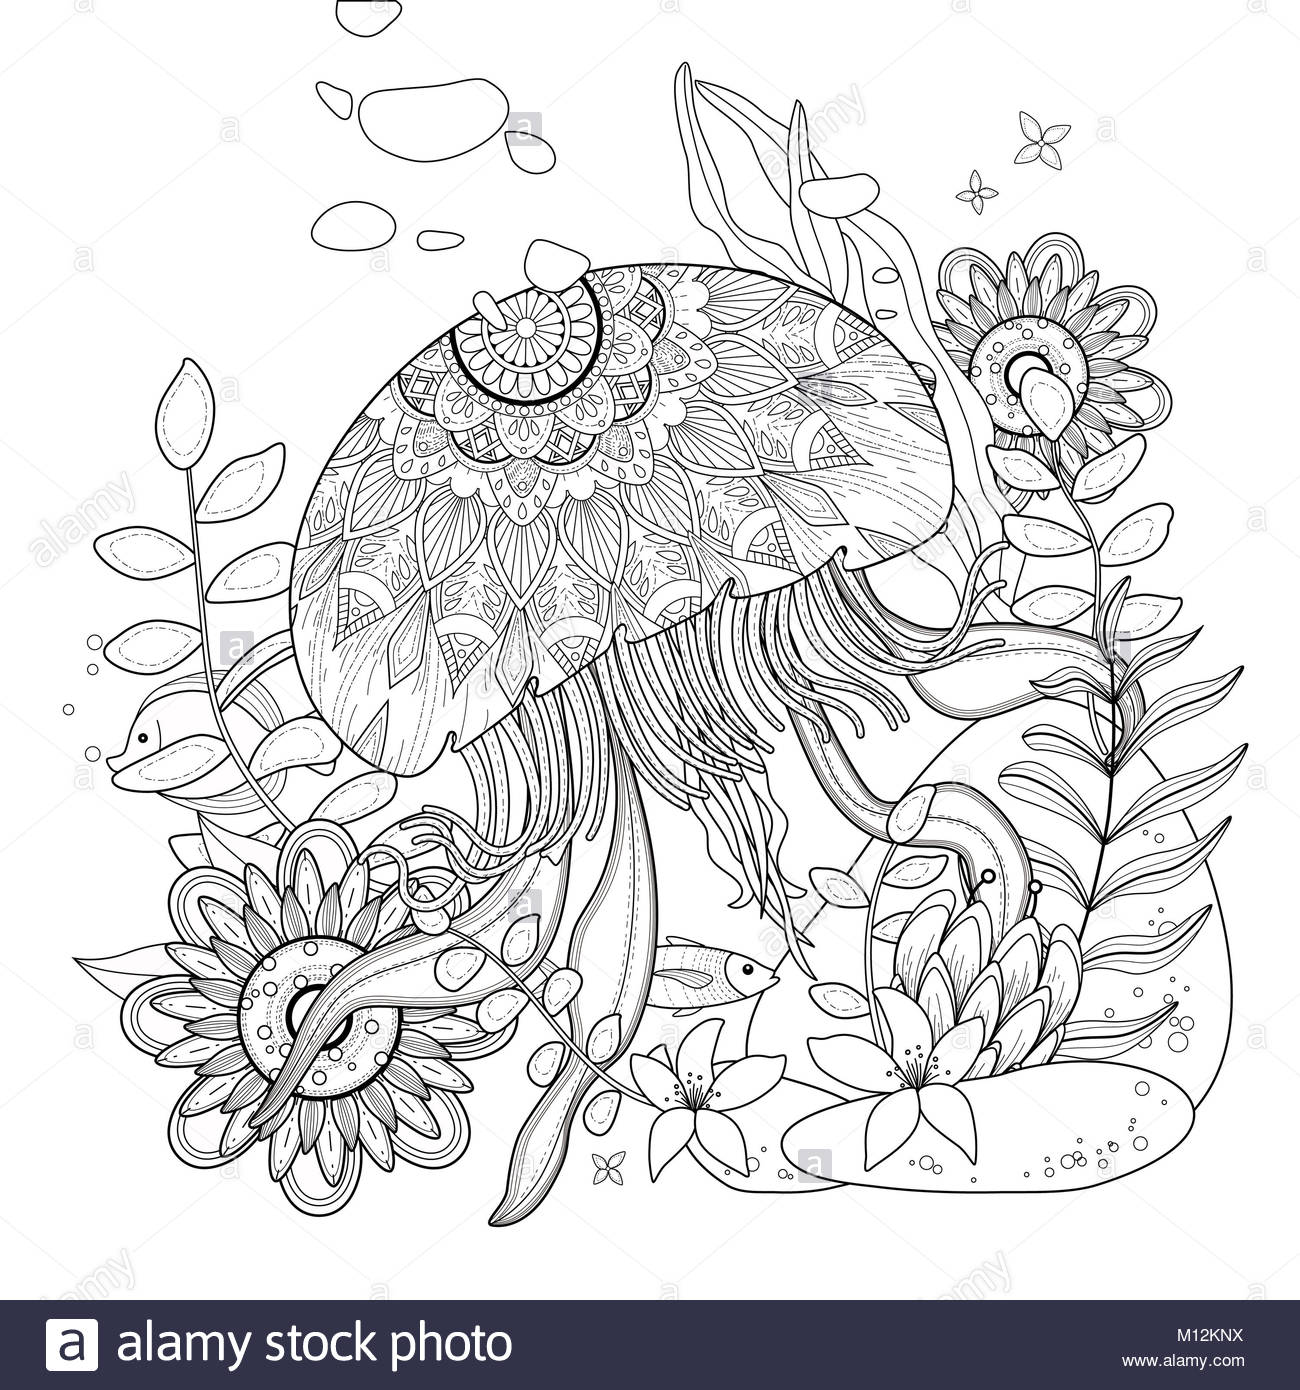 Jellyfish Floating In The Ocean For Coloration